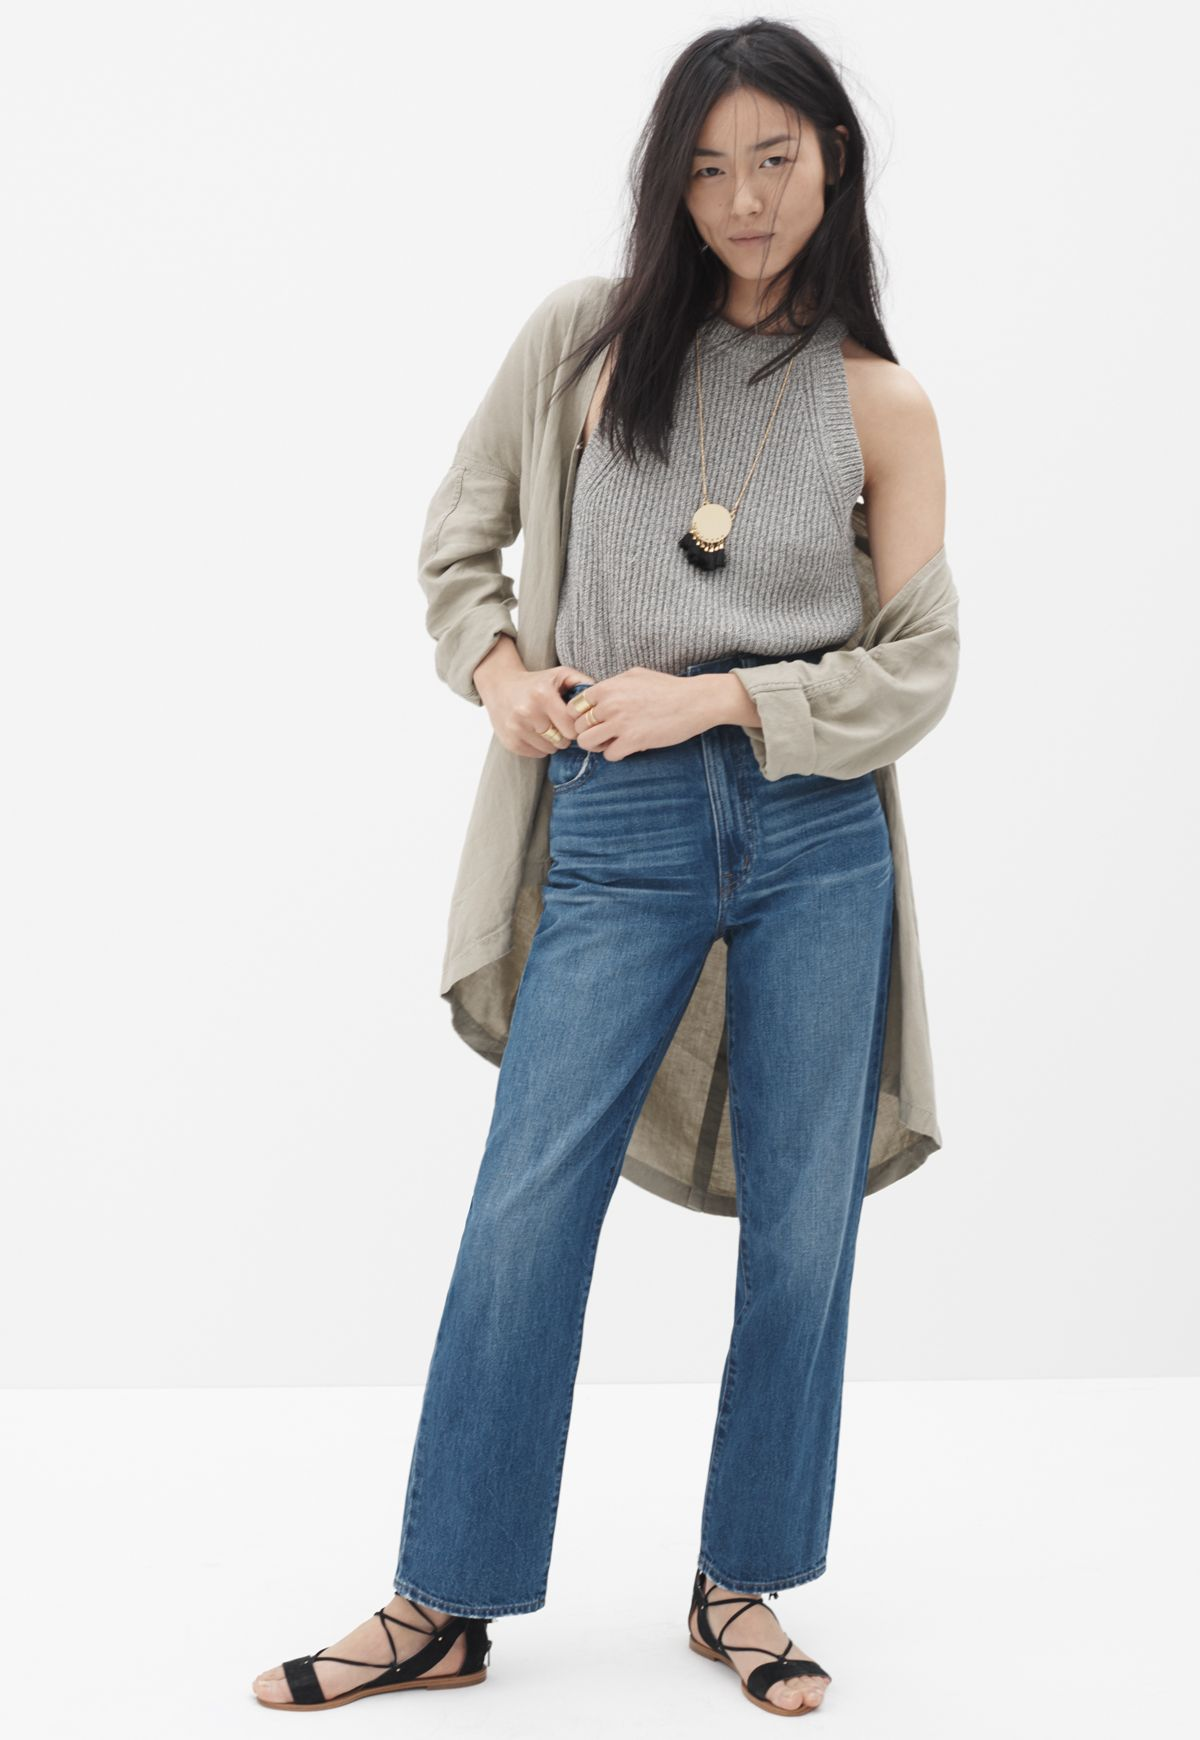 8d3b4d05199 madewell westside straight jeans worn with the cropped valley sweater-tank  + drapey open jacket.